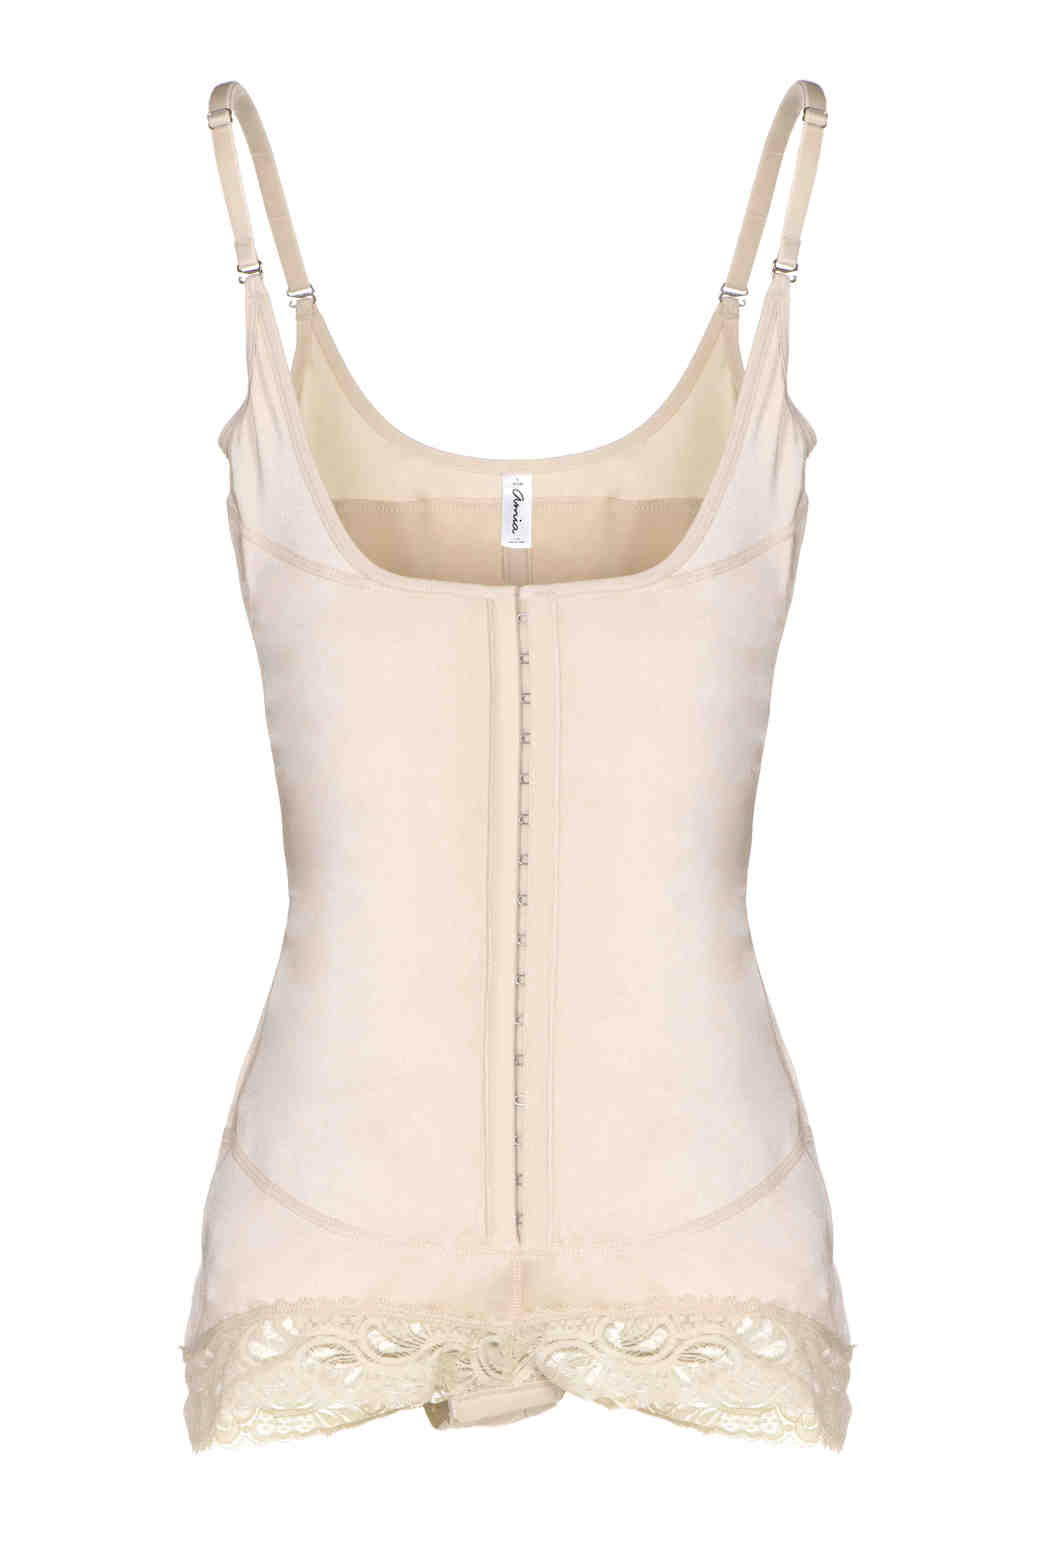 hour glass angel corselette amia